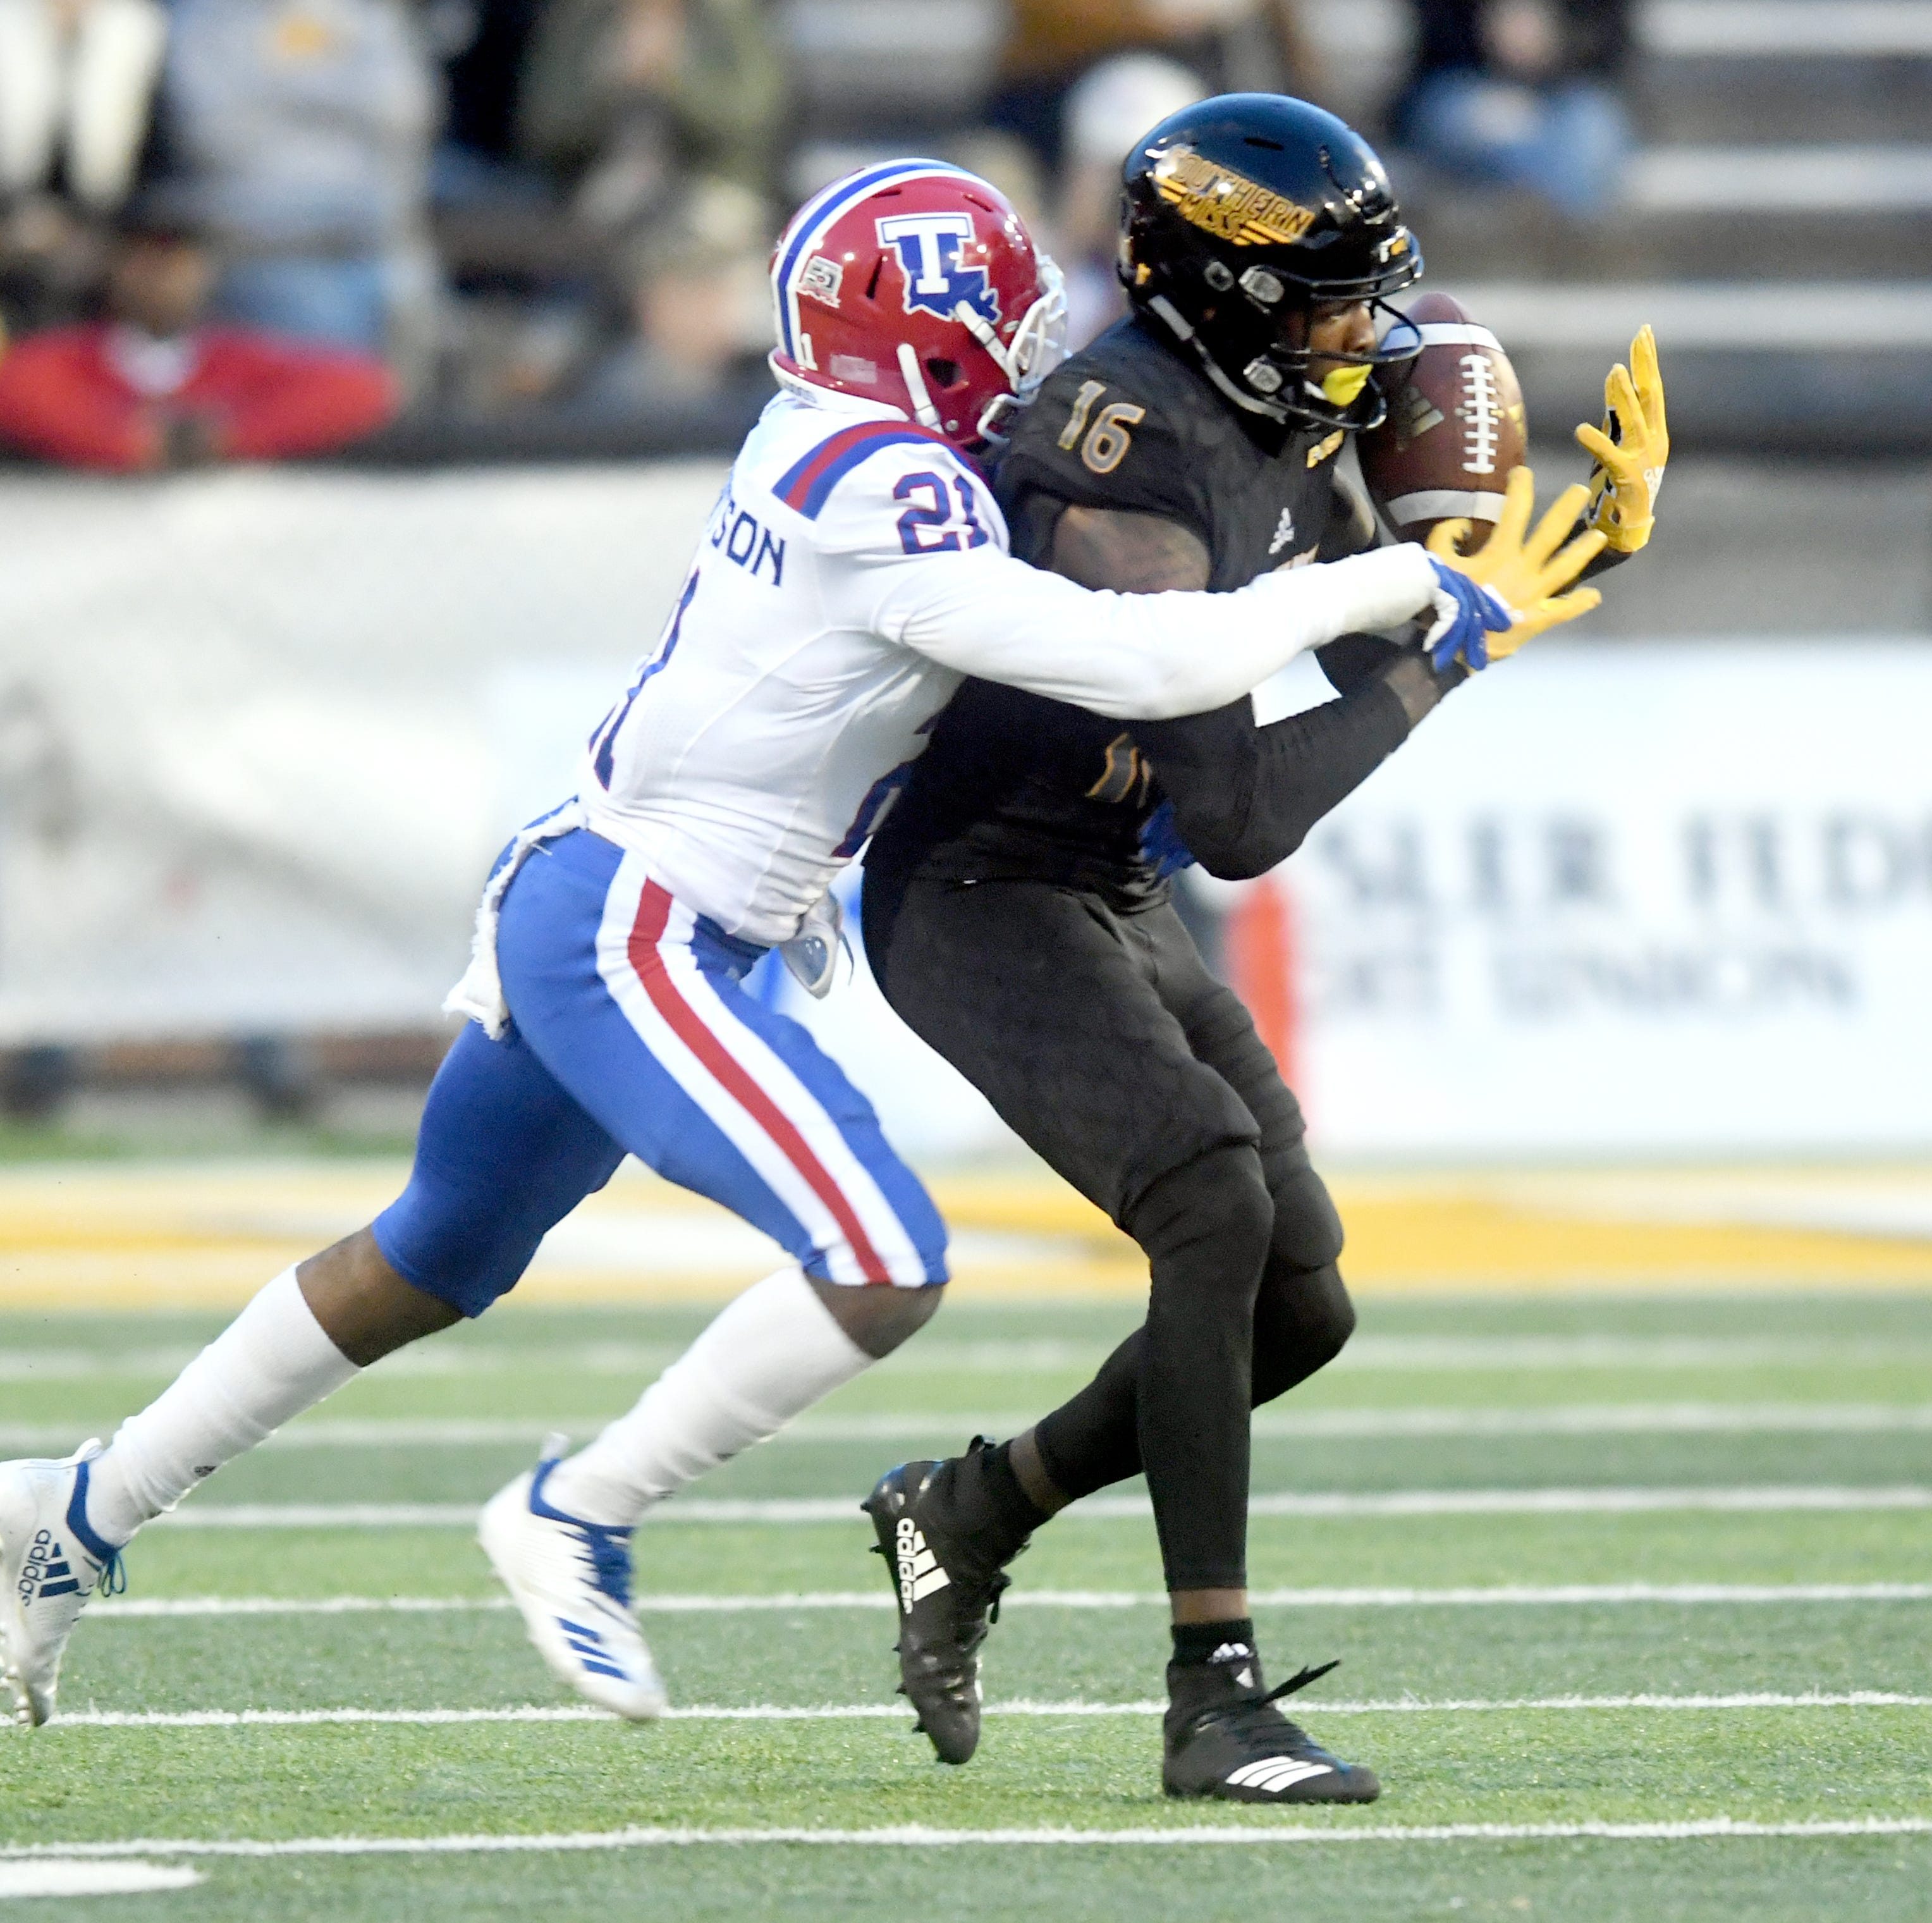 Self-motivating LA Tech 'hungry, angry' heading into WKU game after USM loss